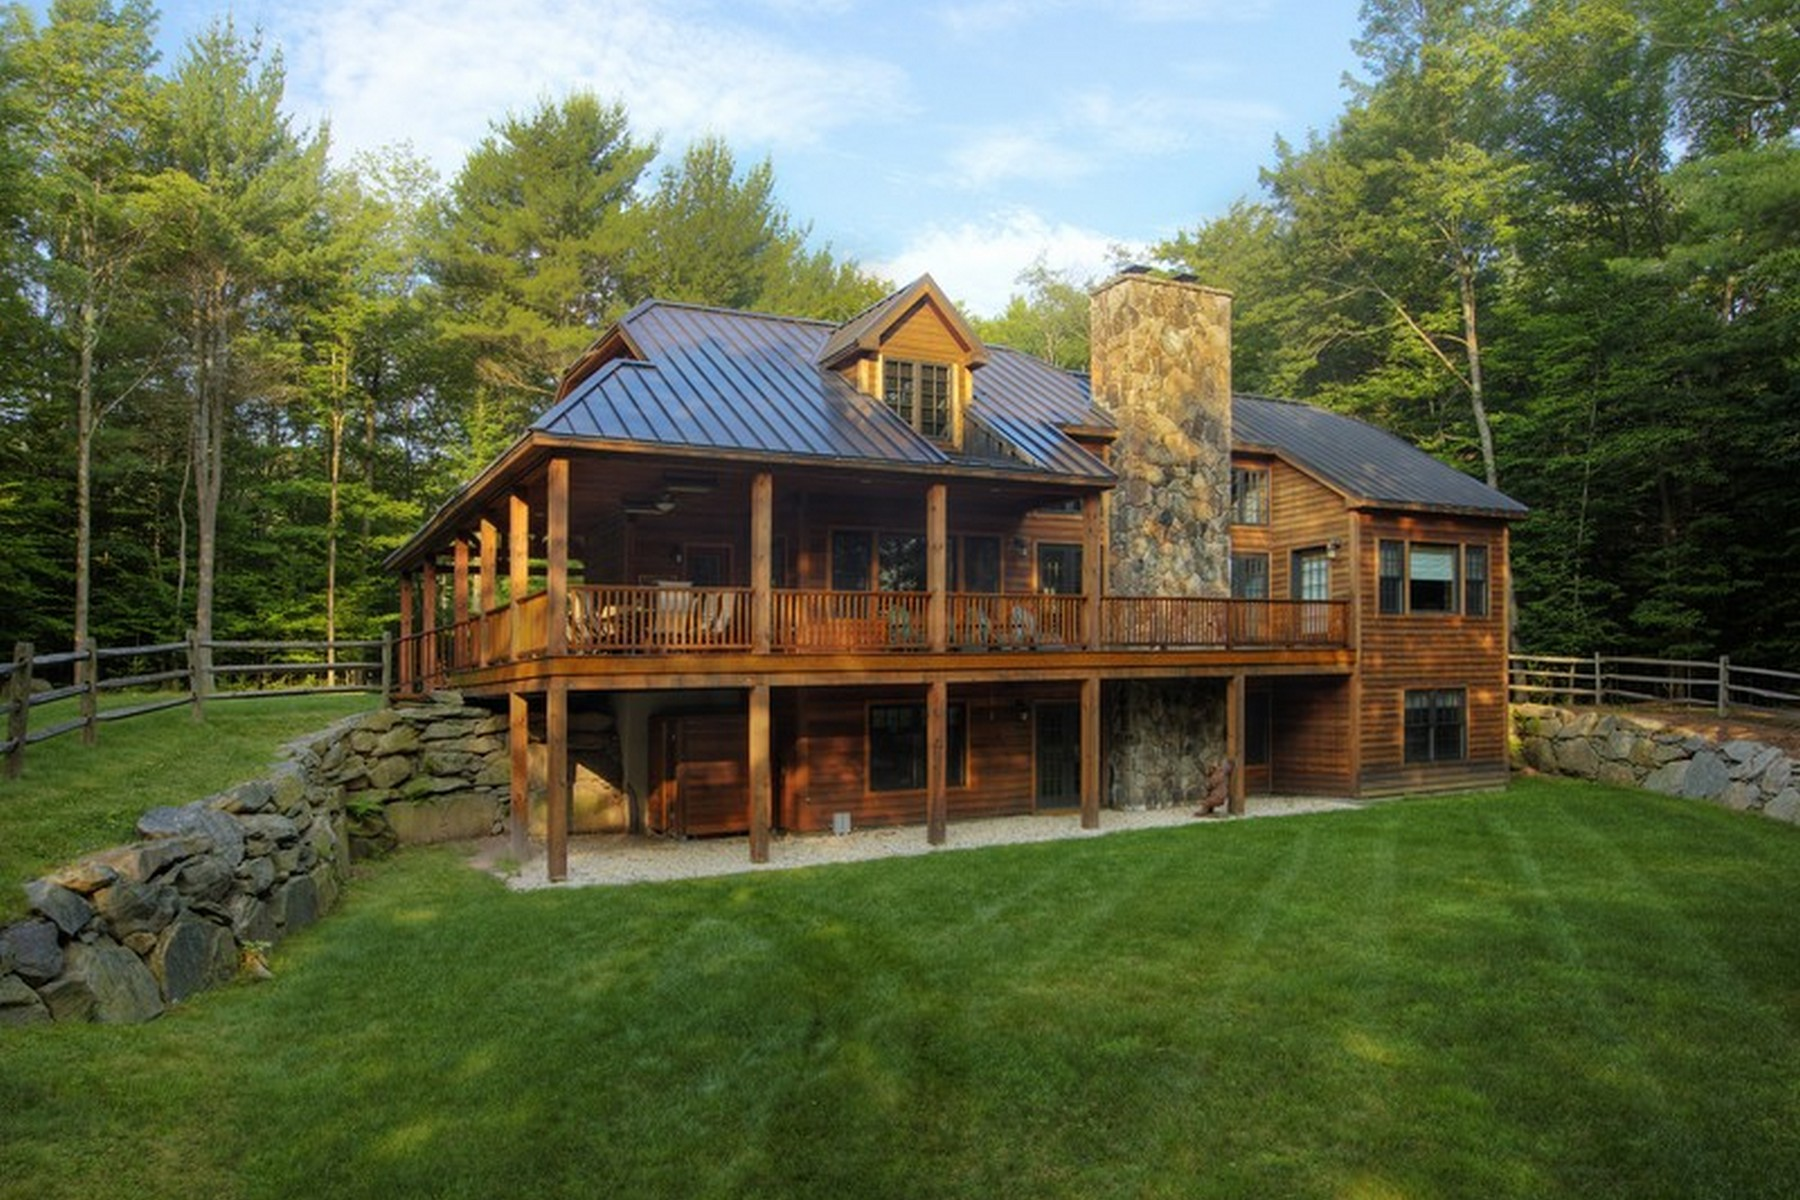 Single Family Home for sale in 43 Homestead Trl, Bethel, NY ,12720